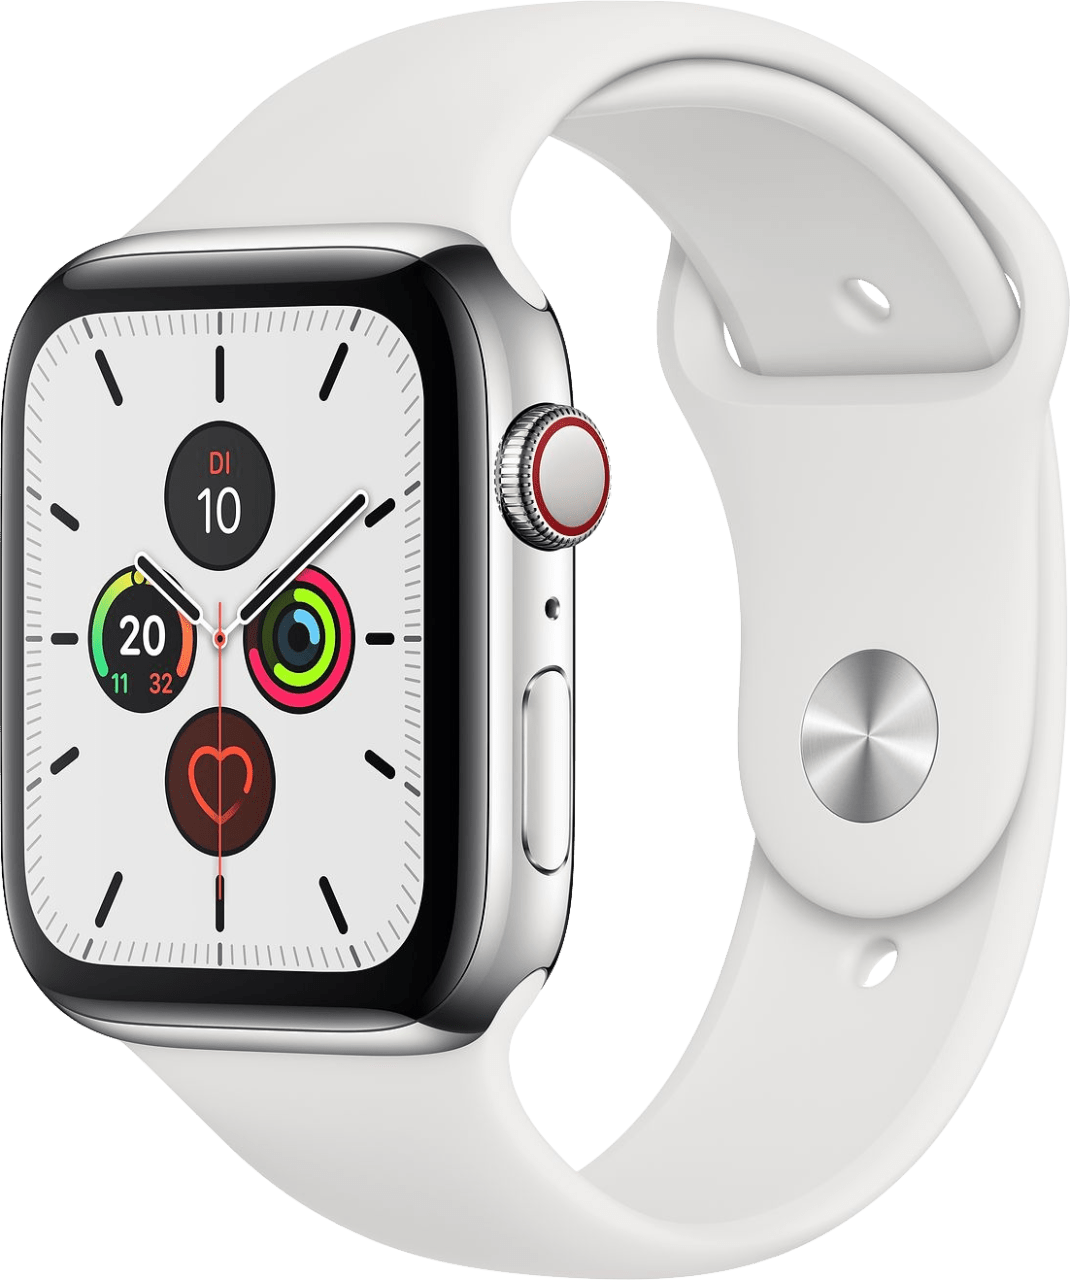 Weiß Apple Watch Series 5 GPS + Cellular, 40mm.2